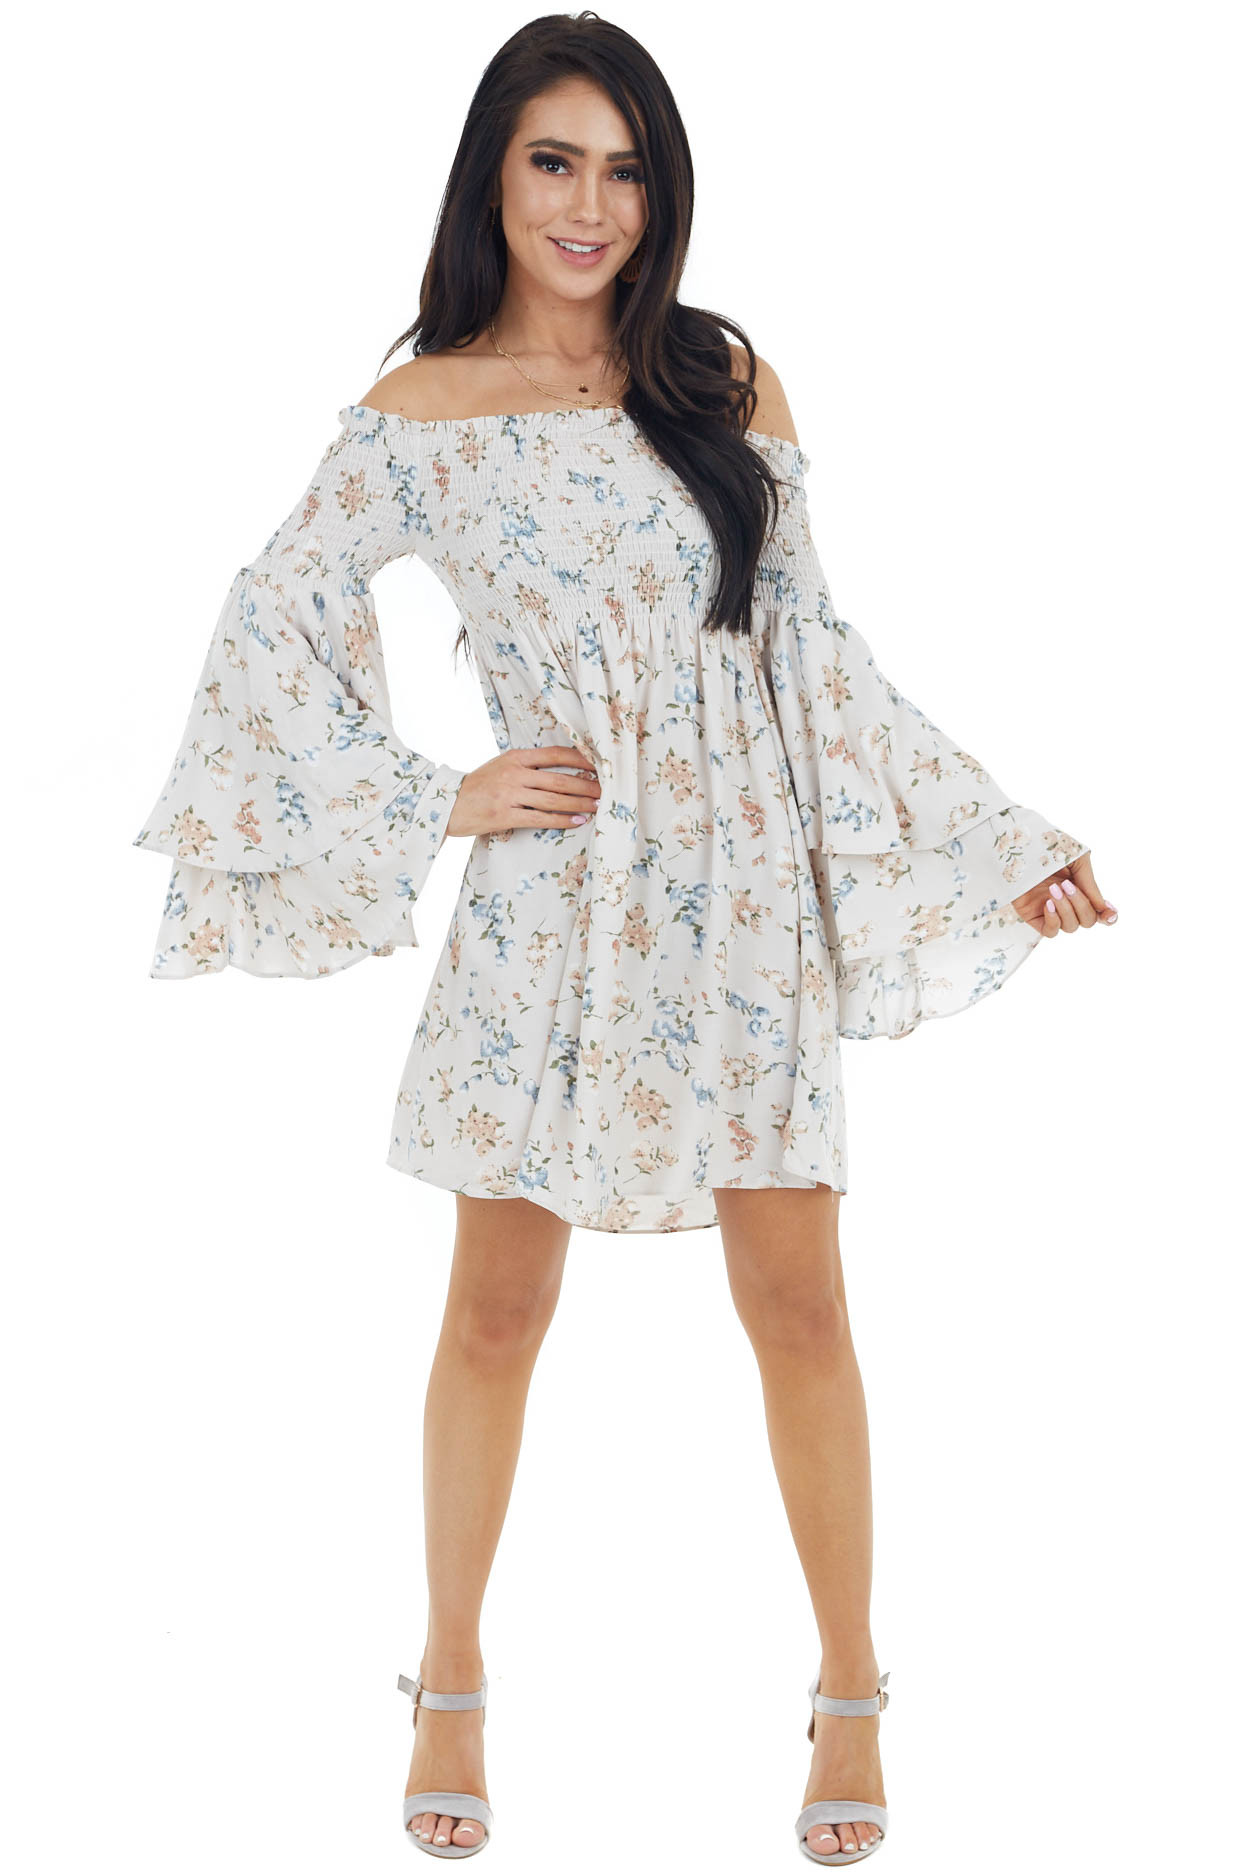 Light Blush Floral Print Dress with Long Bell Sleeves